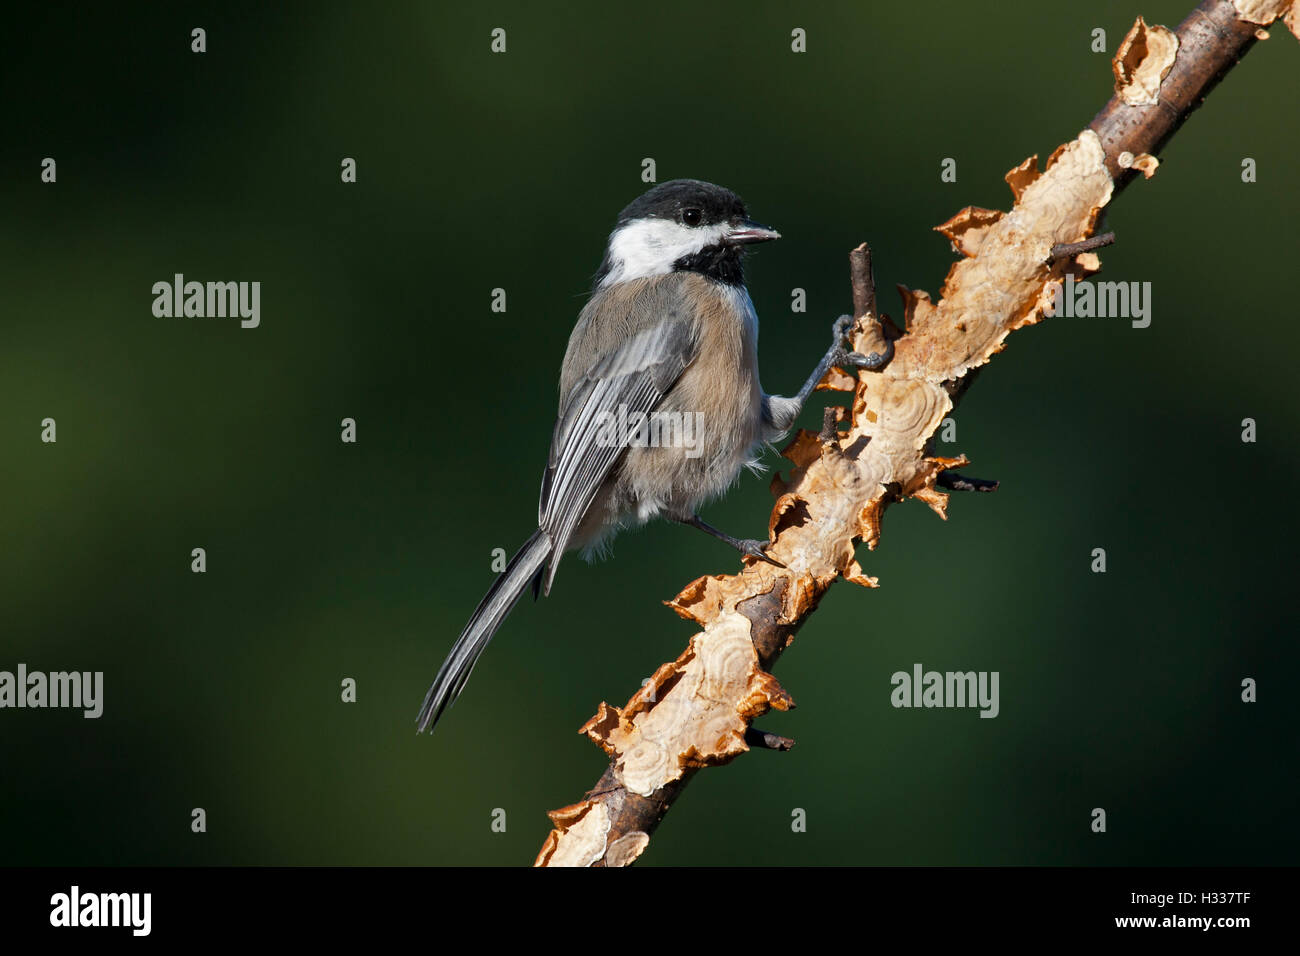 Chickadee perching on branch - Stock Image